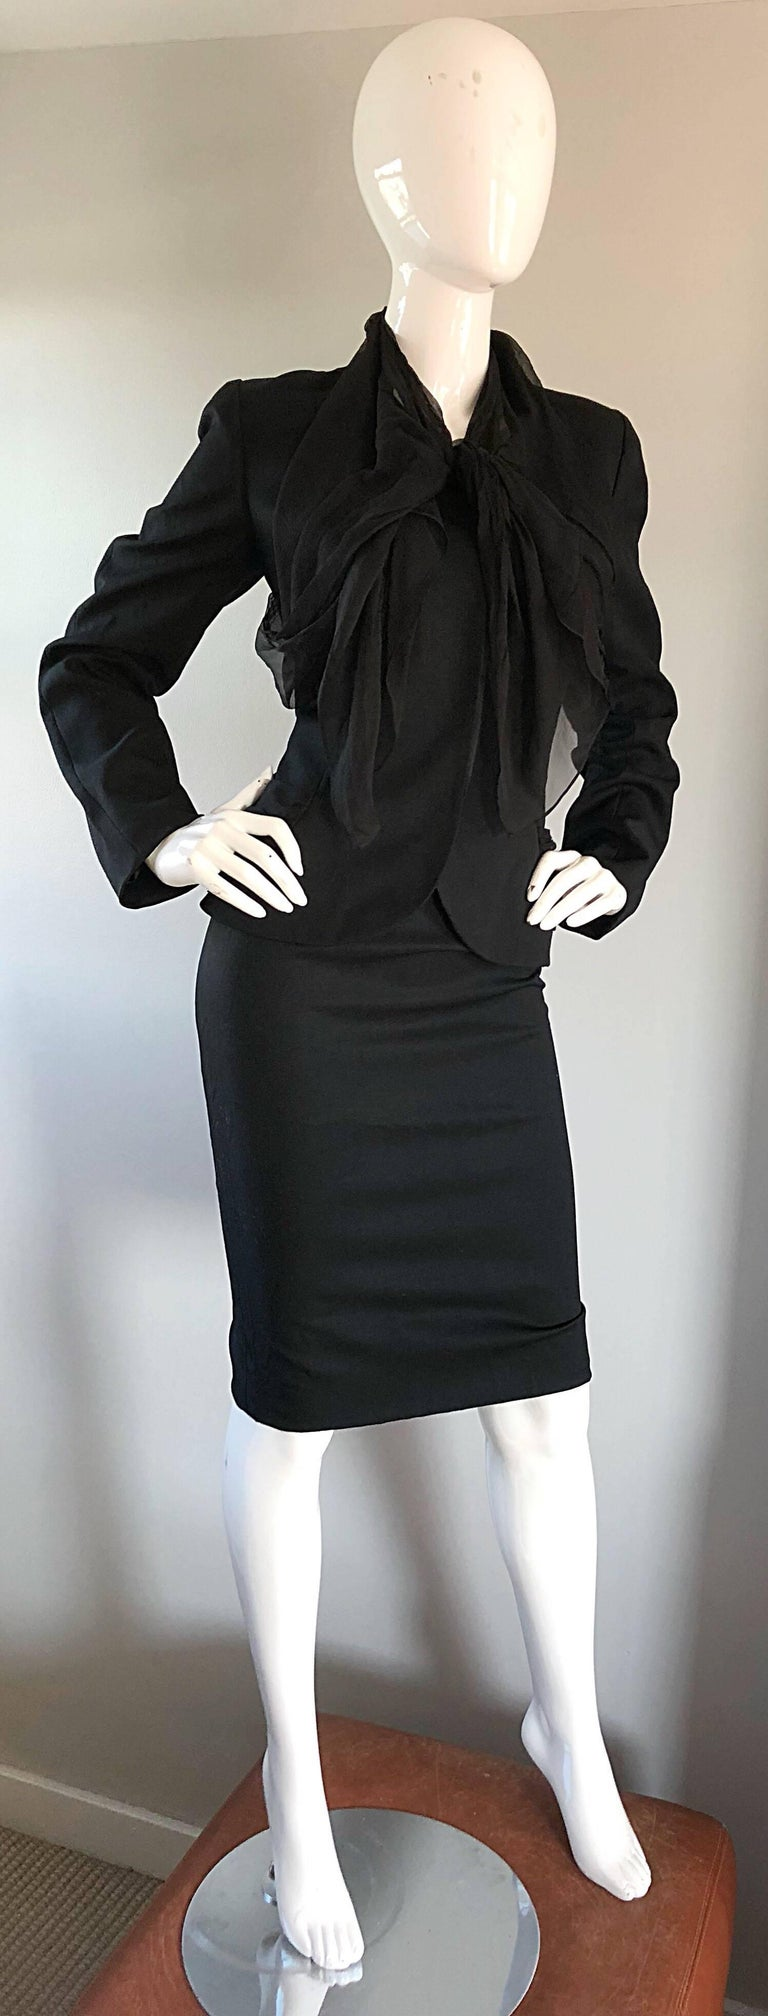 John Galliano Early 2000s Black Size 8 / 10 1940s Style Jacket Skirt Suit For Sale 1